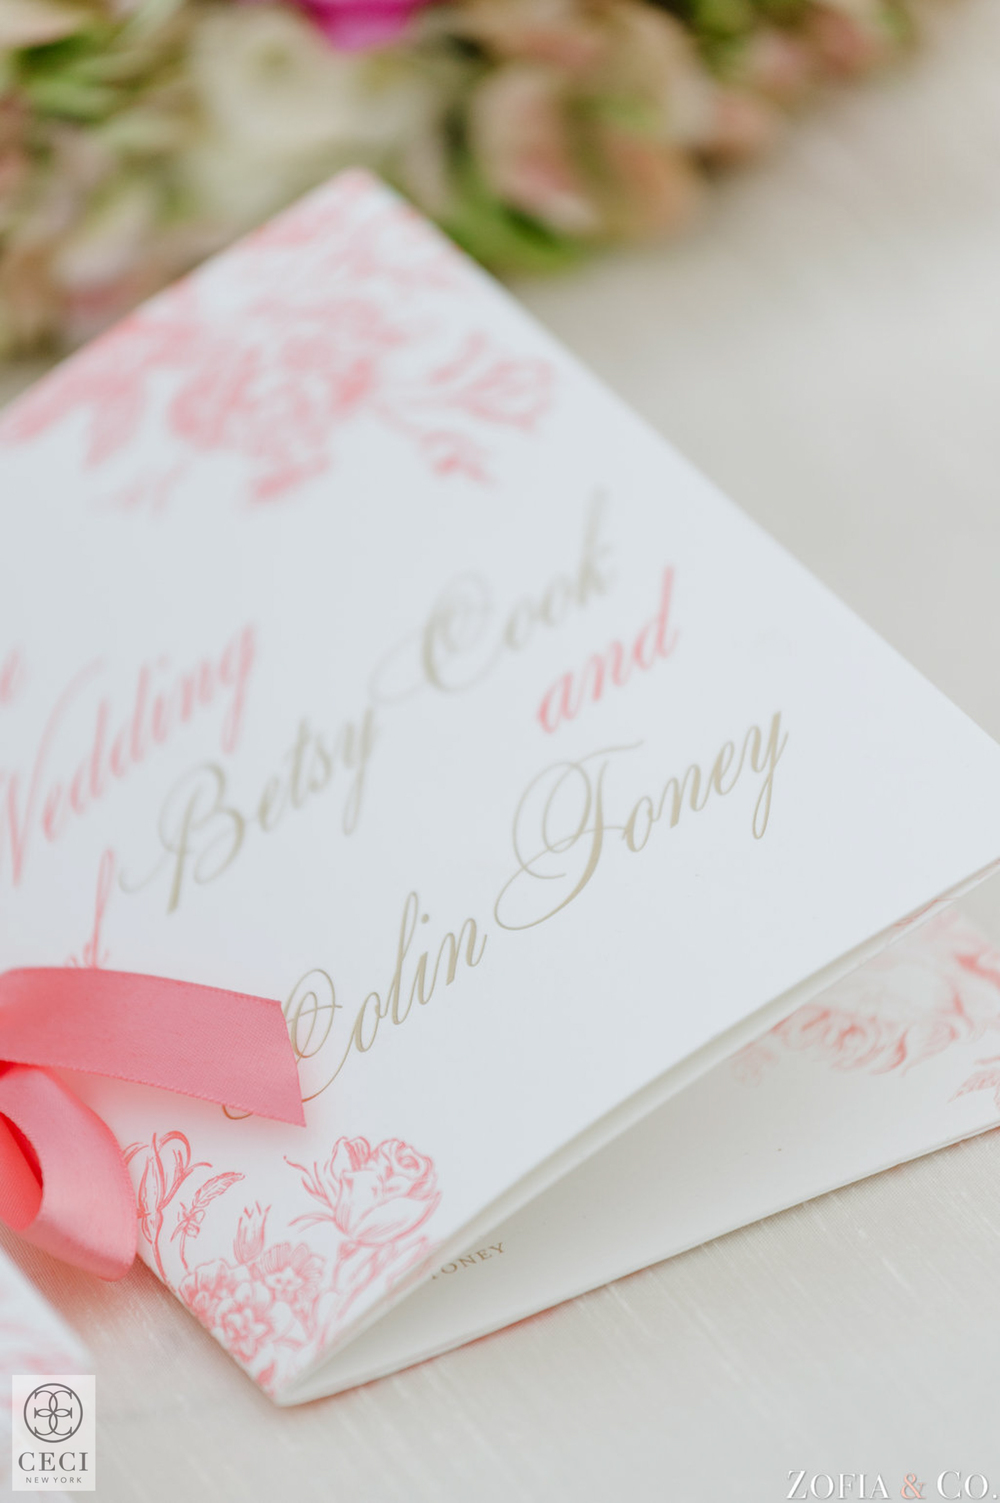 Ceci_New_York_Custom_Luxury_Wedding_LaserCut_Stationery_Personalized_Couture_Foil_Stamping_Black_Chic_-9.jpg